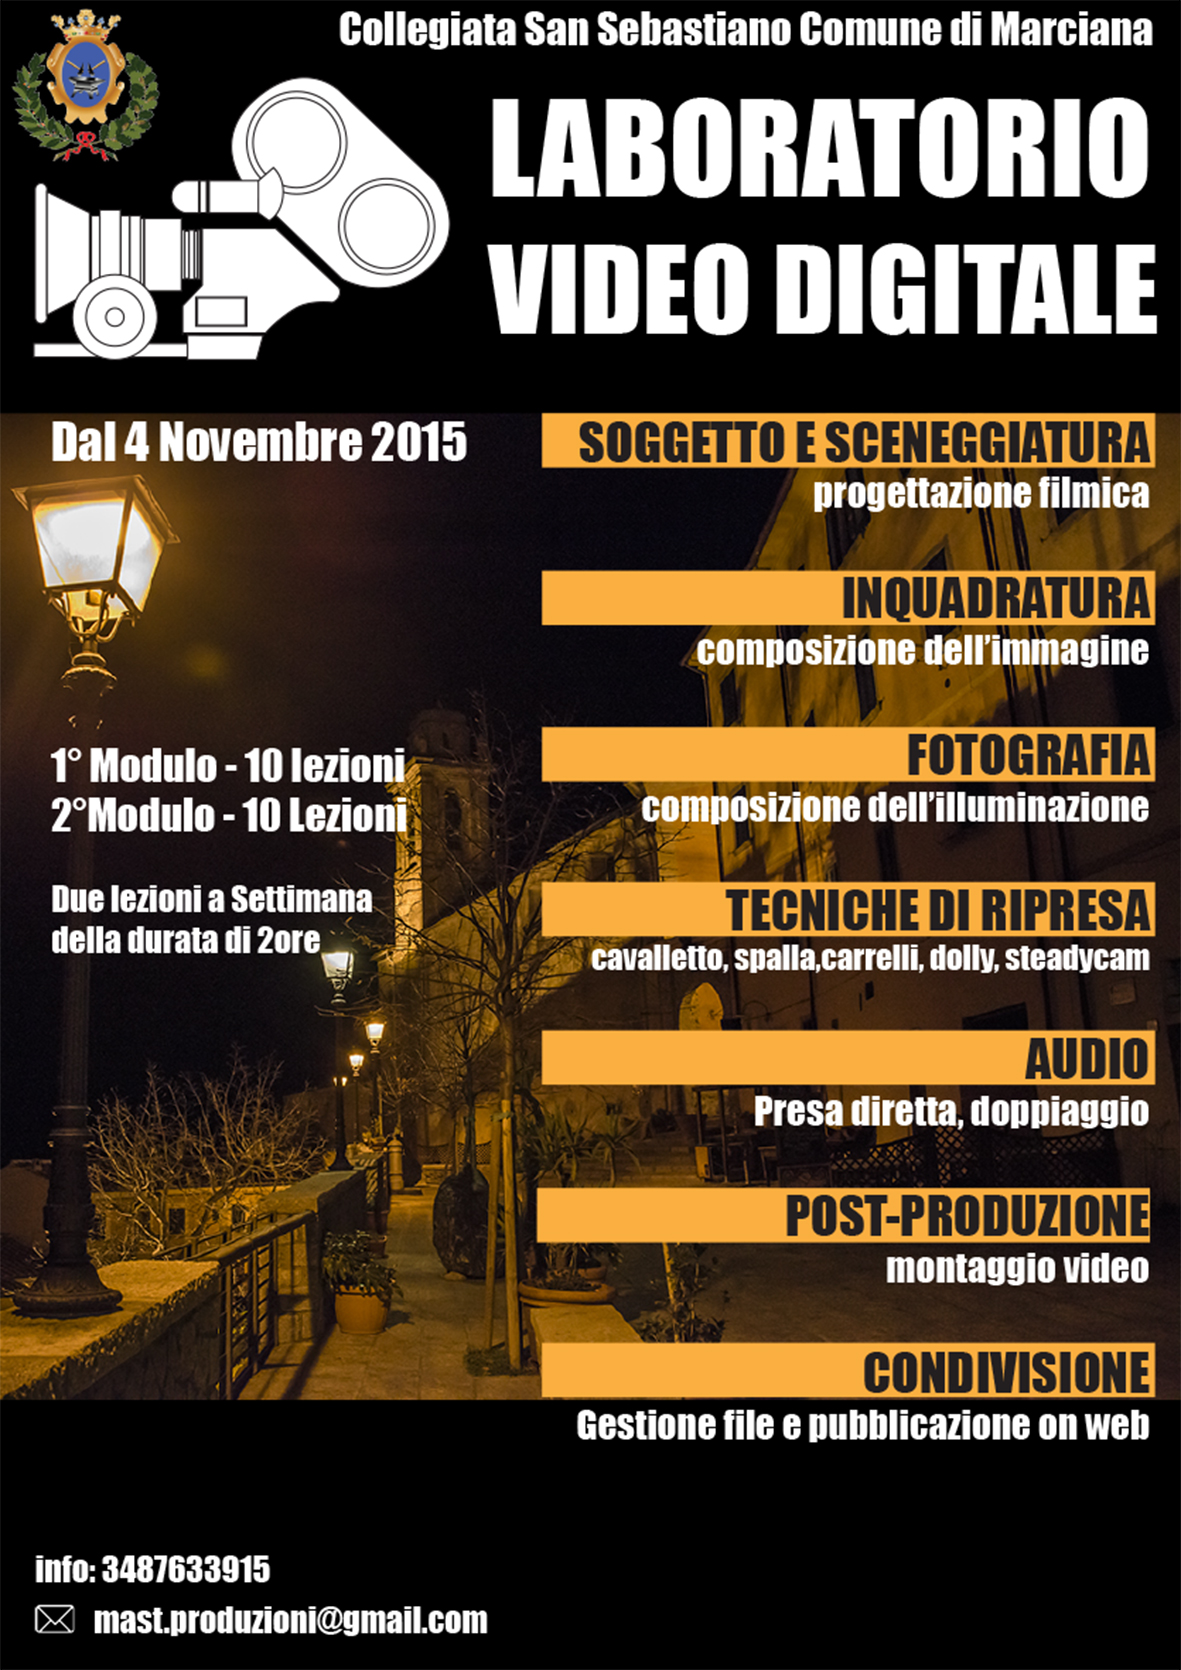 laboratorio video digitale